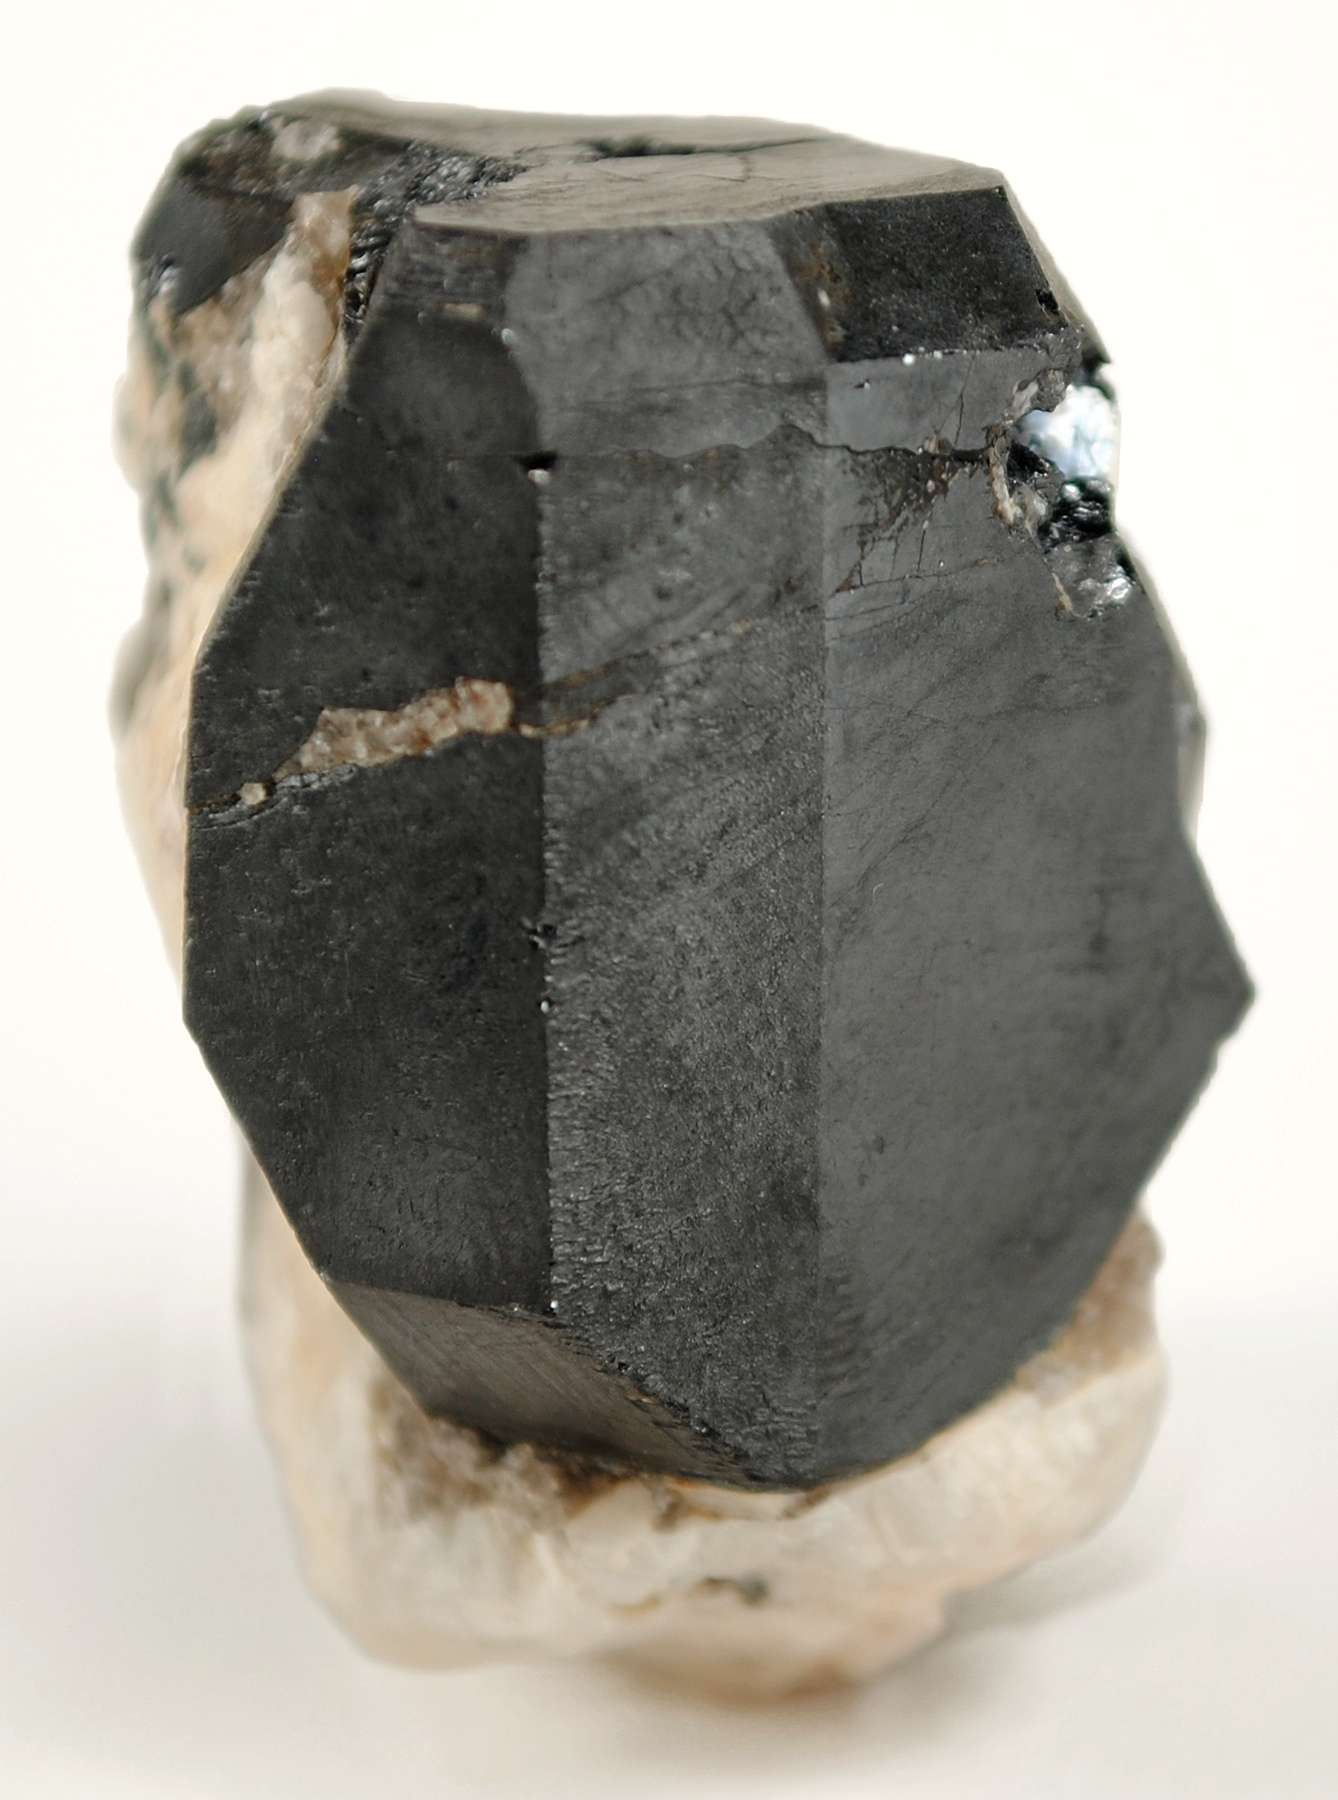 This specimen hosts approx 2 5 x 2 x 2 cm complexly terminated crystal